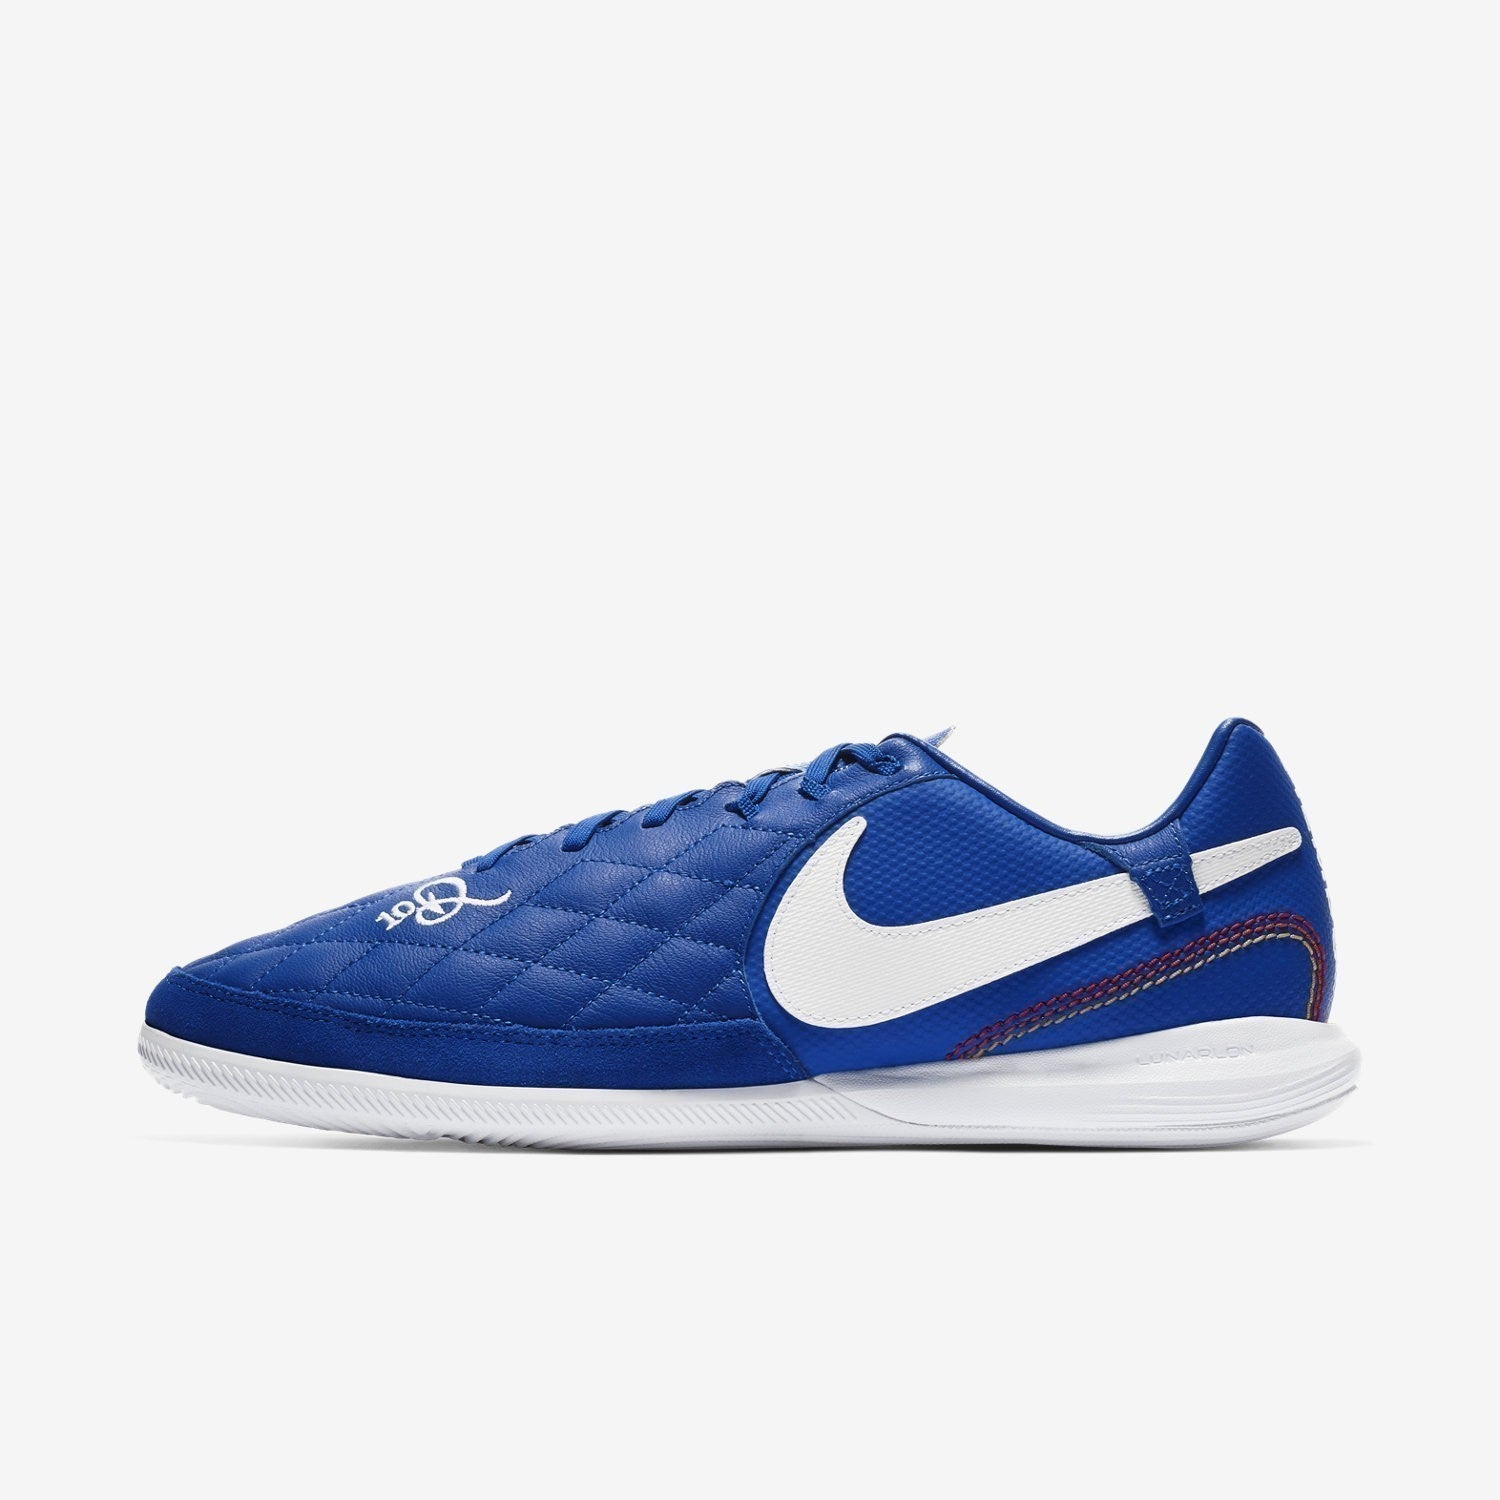 agudo Mortal saltar  Men's TiempoX Lunar Legend 7 Pro 10R IC Shoes - Game Royal/White - Niky's  Sports